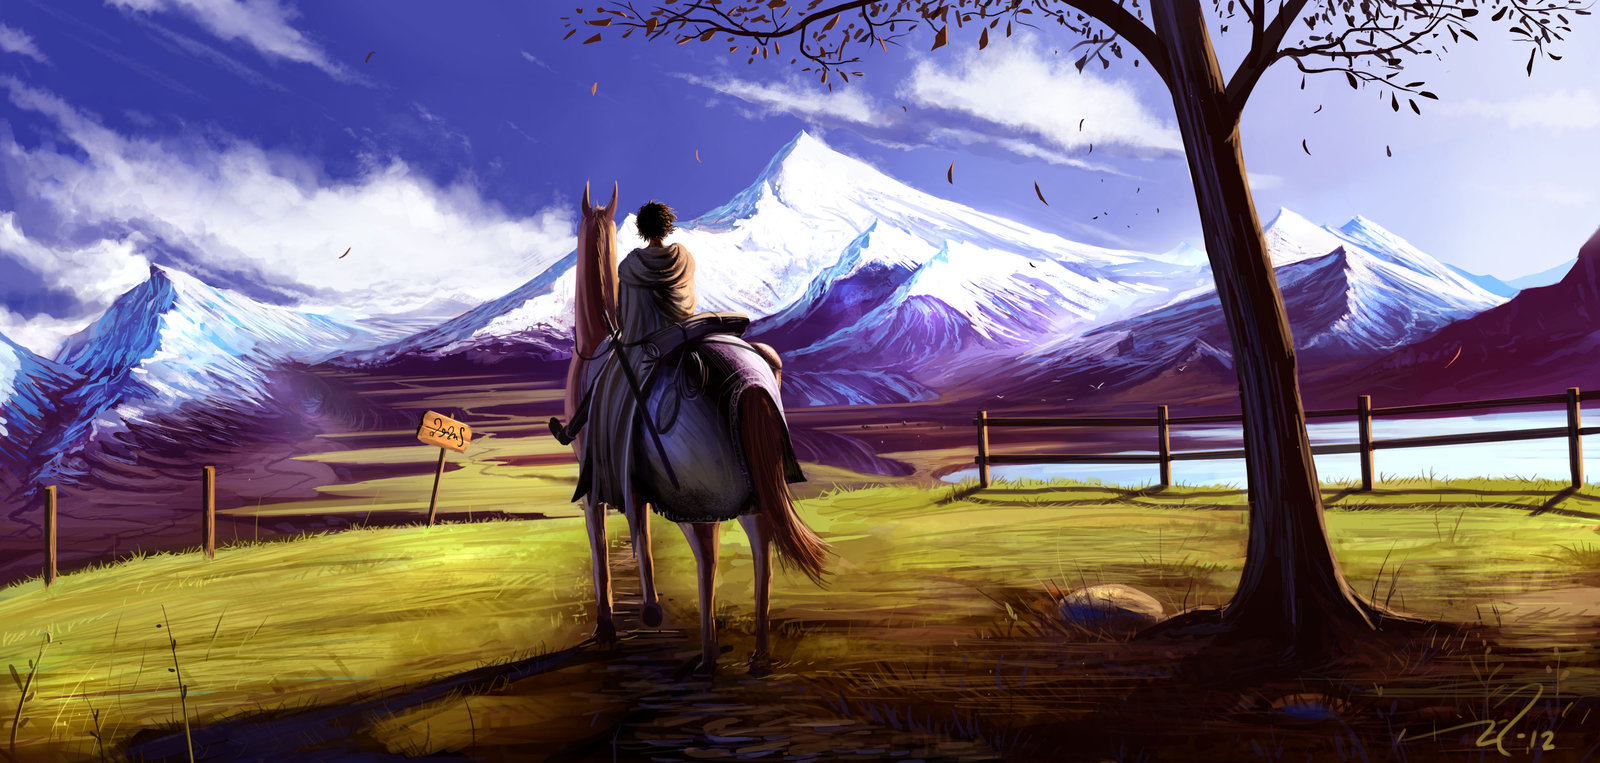 Anime Landscape Sky Horse Collection 11 Wallpapers